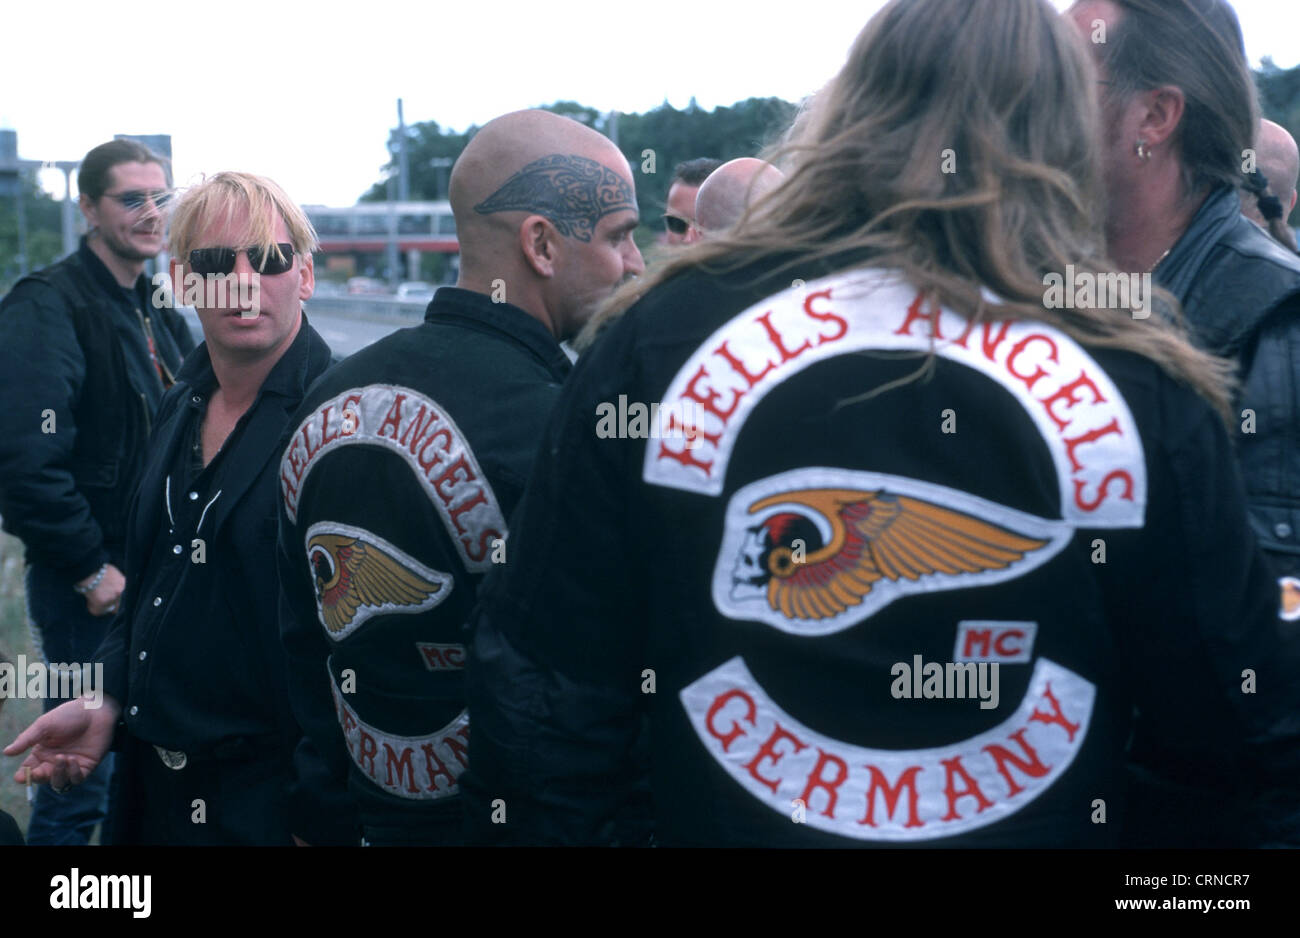 ProzeГџ Hells Angels Berlin